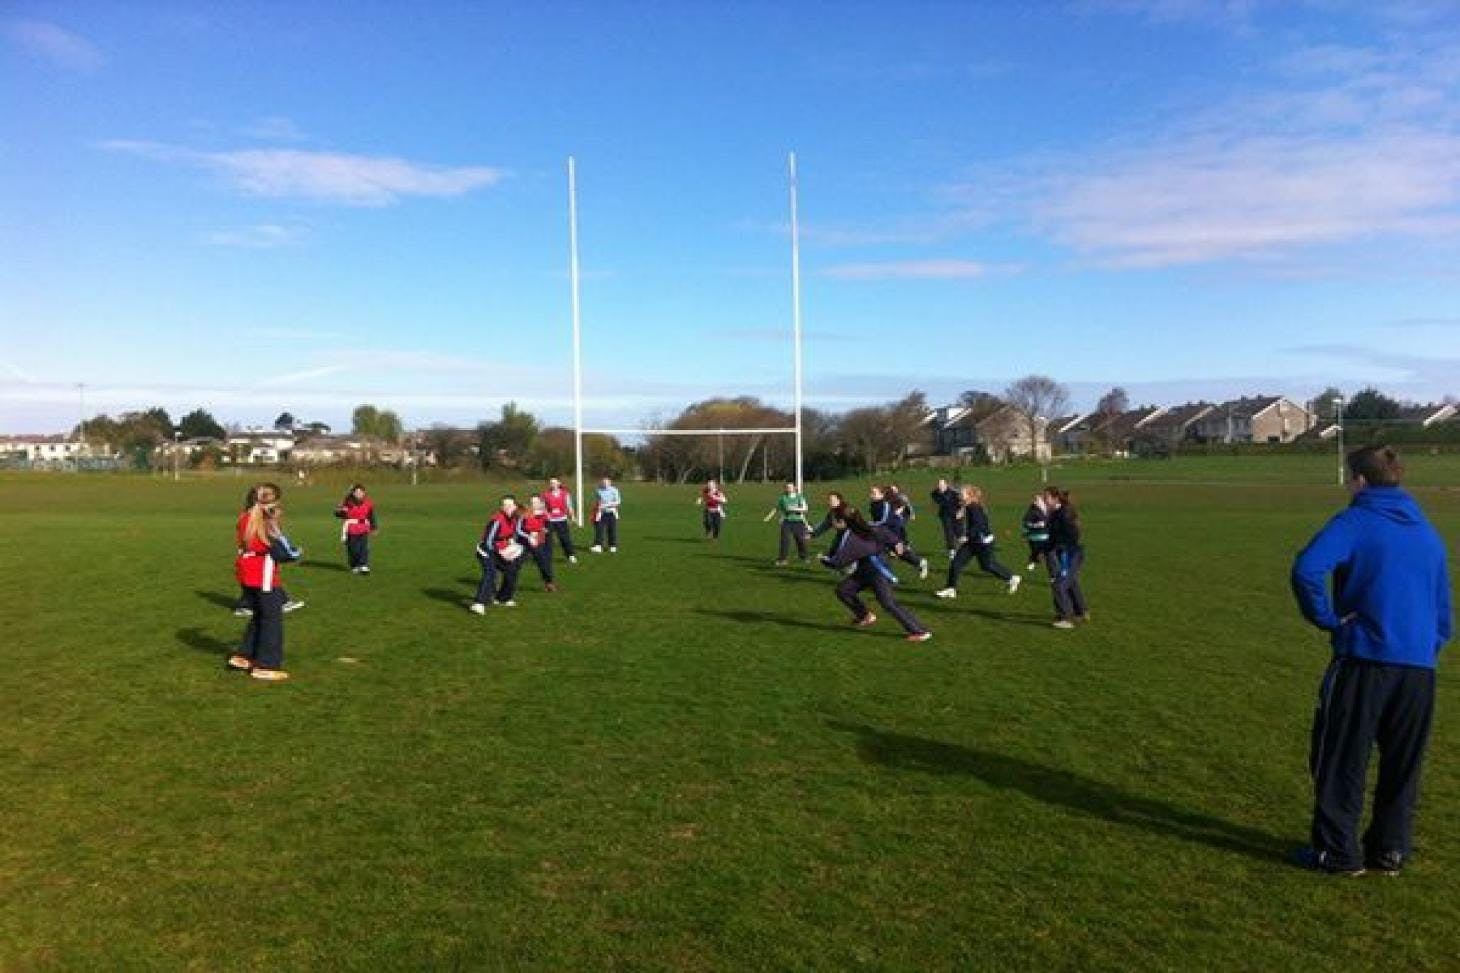 Kilbogget Park - Coolevin Union | Grass rugby pitch